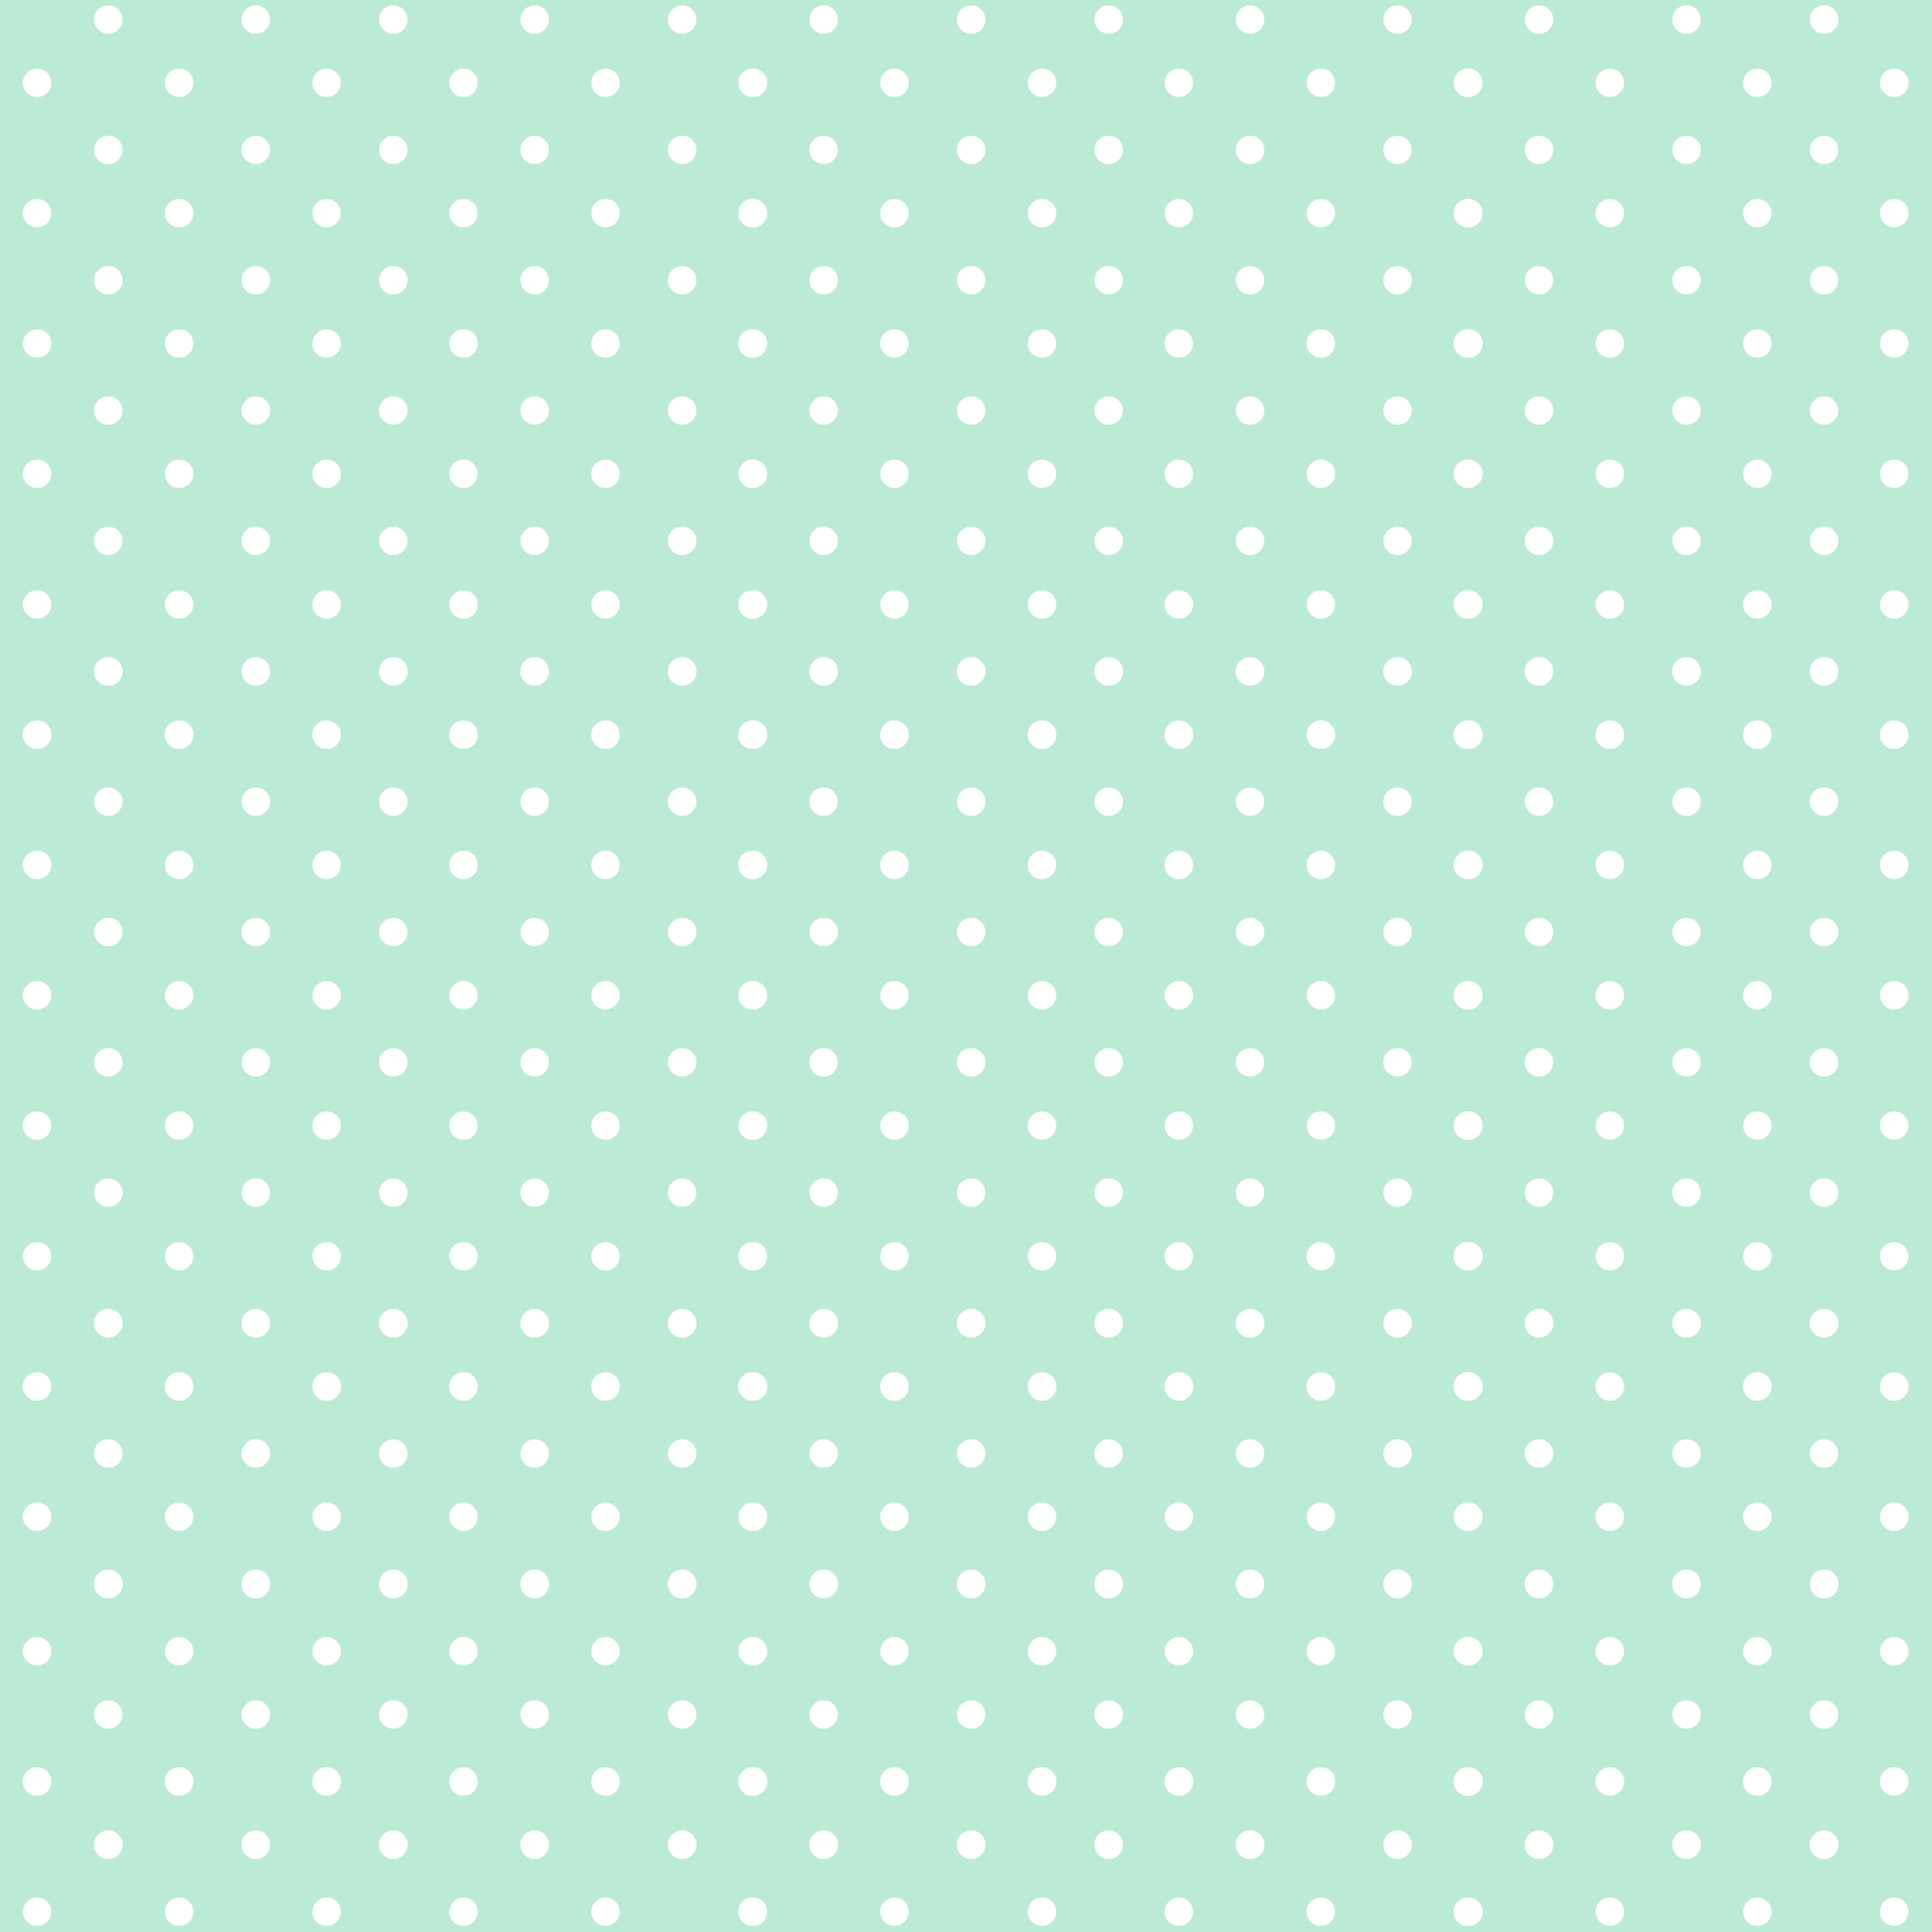 Free-Mint-Scrapbooking-Papers-Free-Pretty-Things-For-You-wallpaper-wp4606029